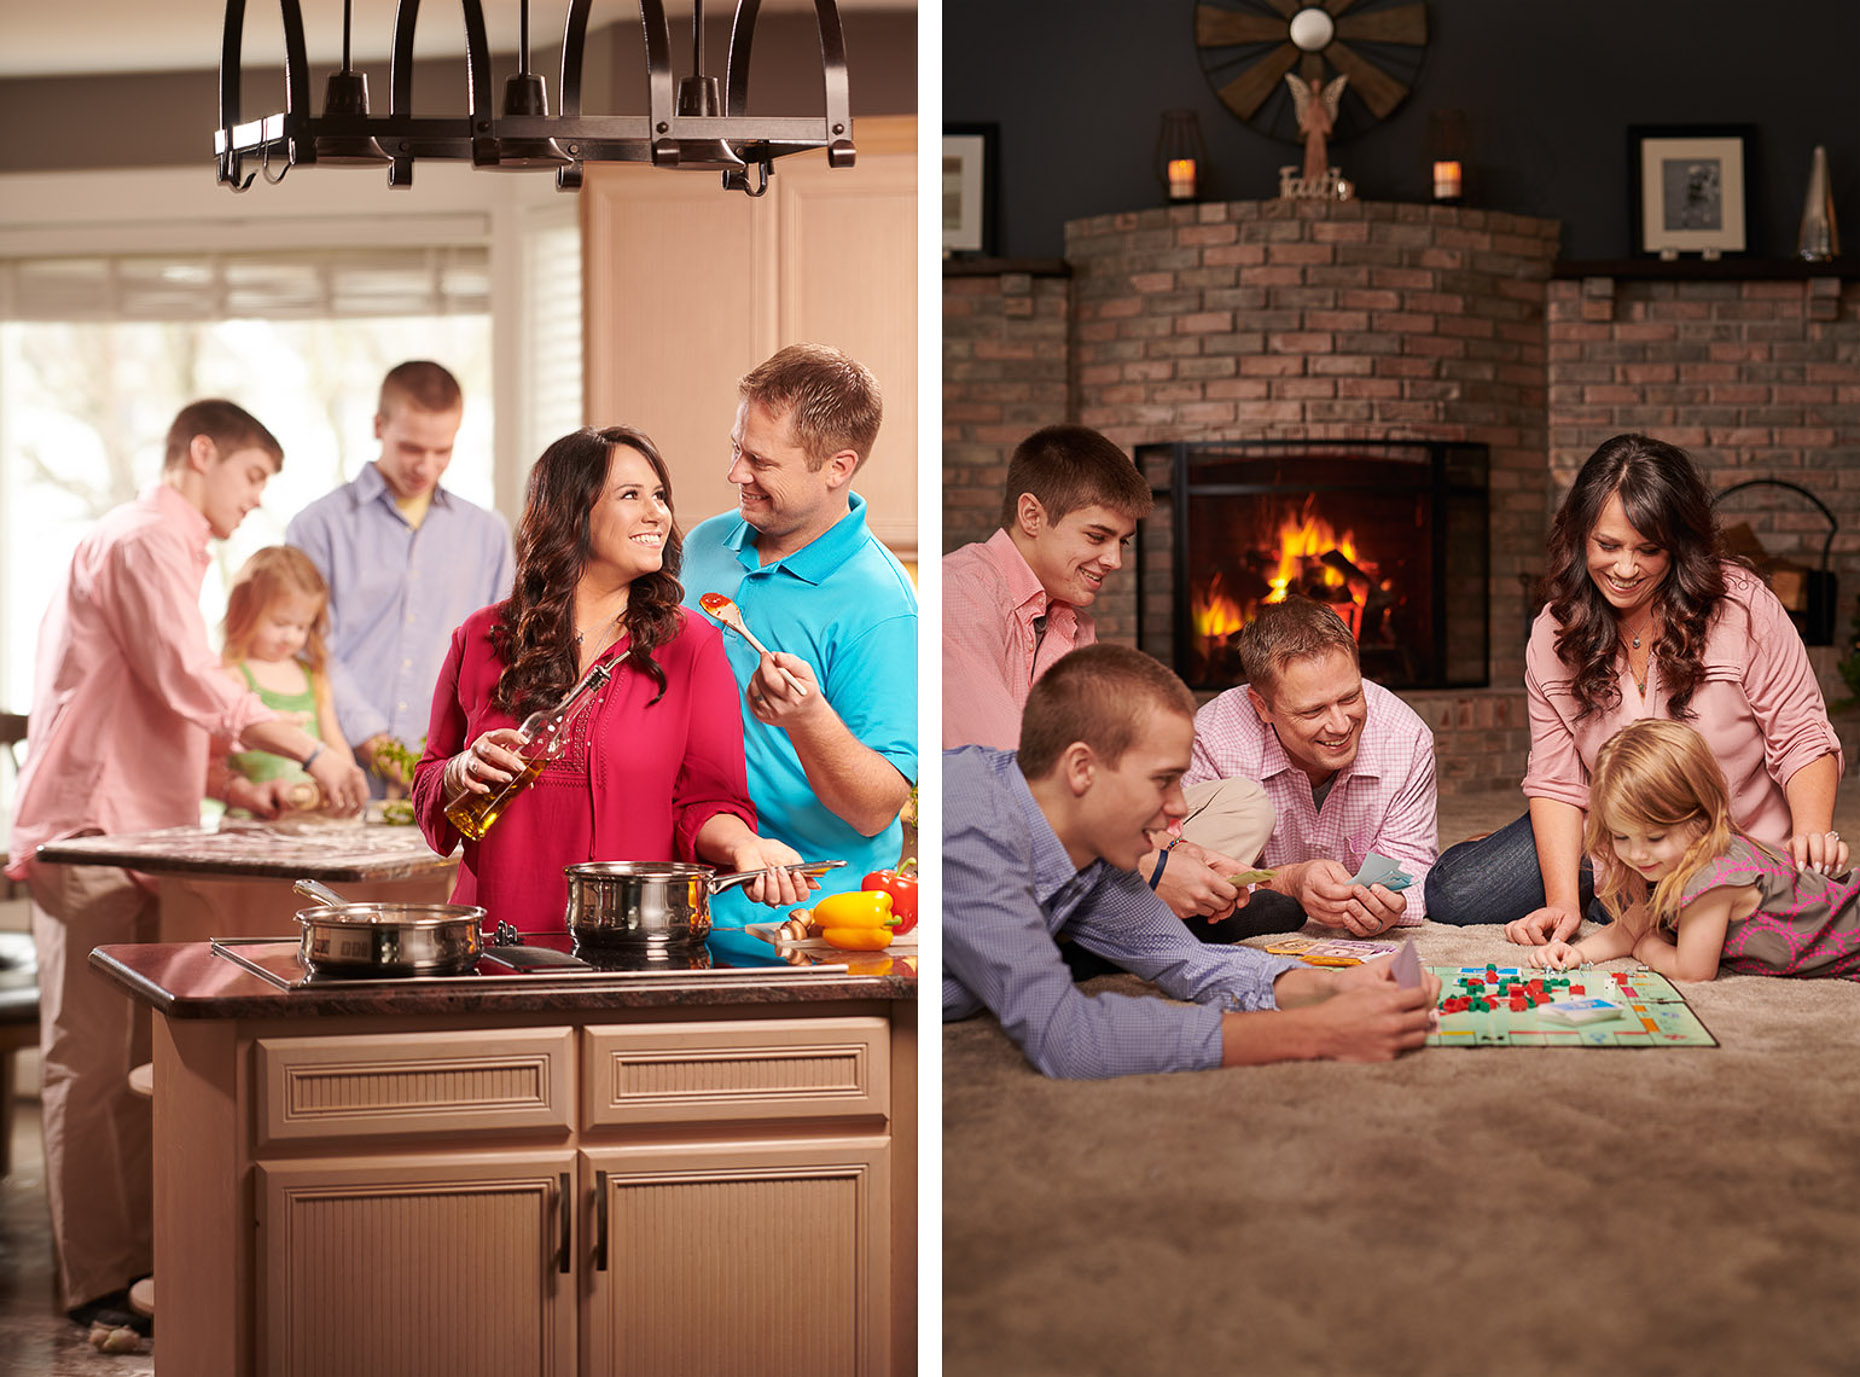 Editorial - Lifestyle - family night boardgames, cooking - portrait photographer